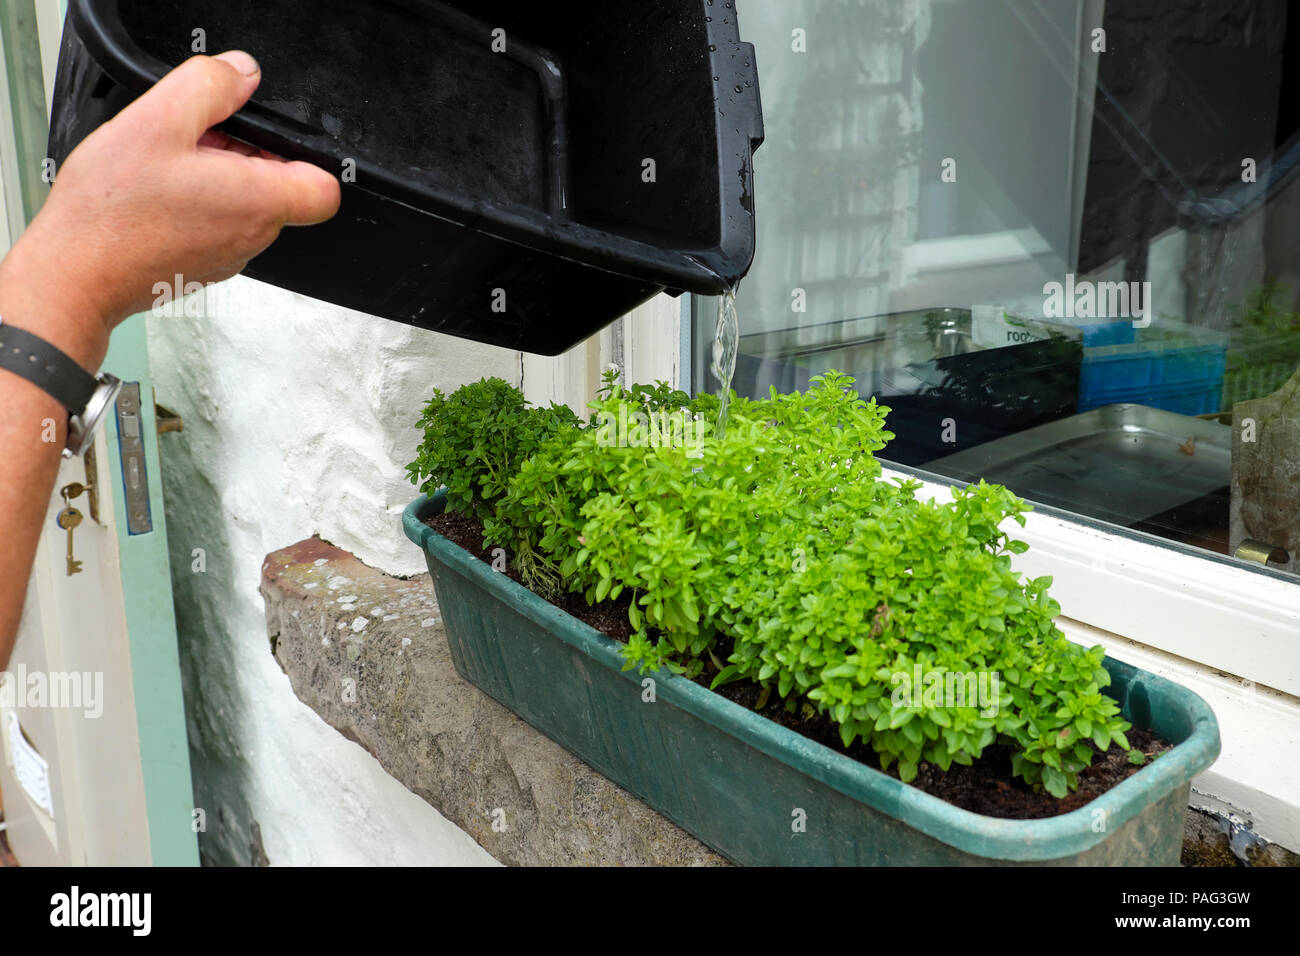 A person pouring recycling water from a washing up bowl onto a window box container planter with Greek basil plants growing in Wales UK  KATHY DEWITT - Stock Image